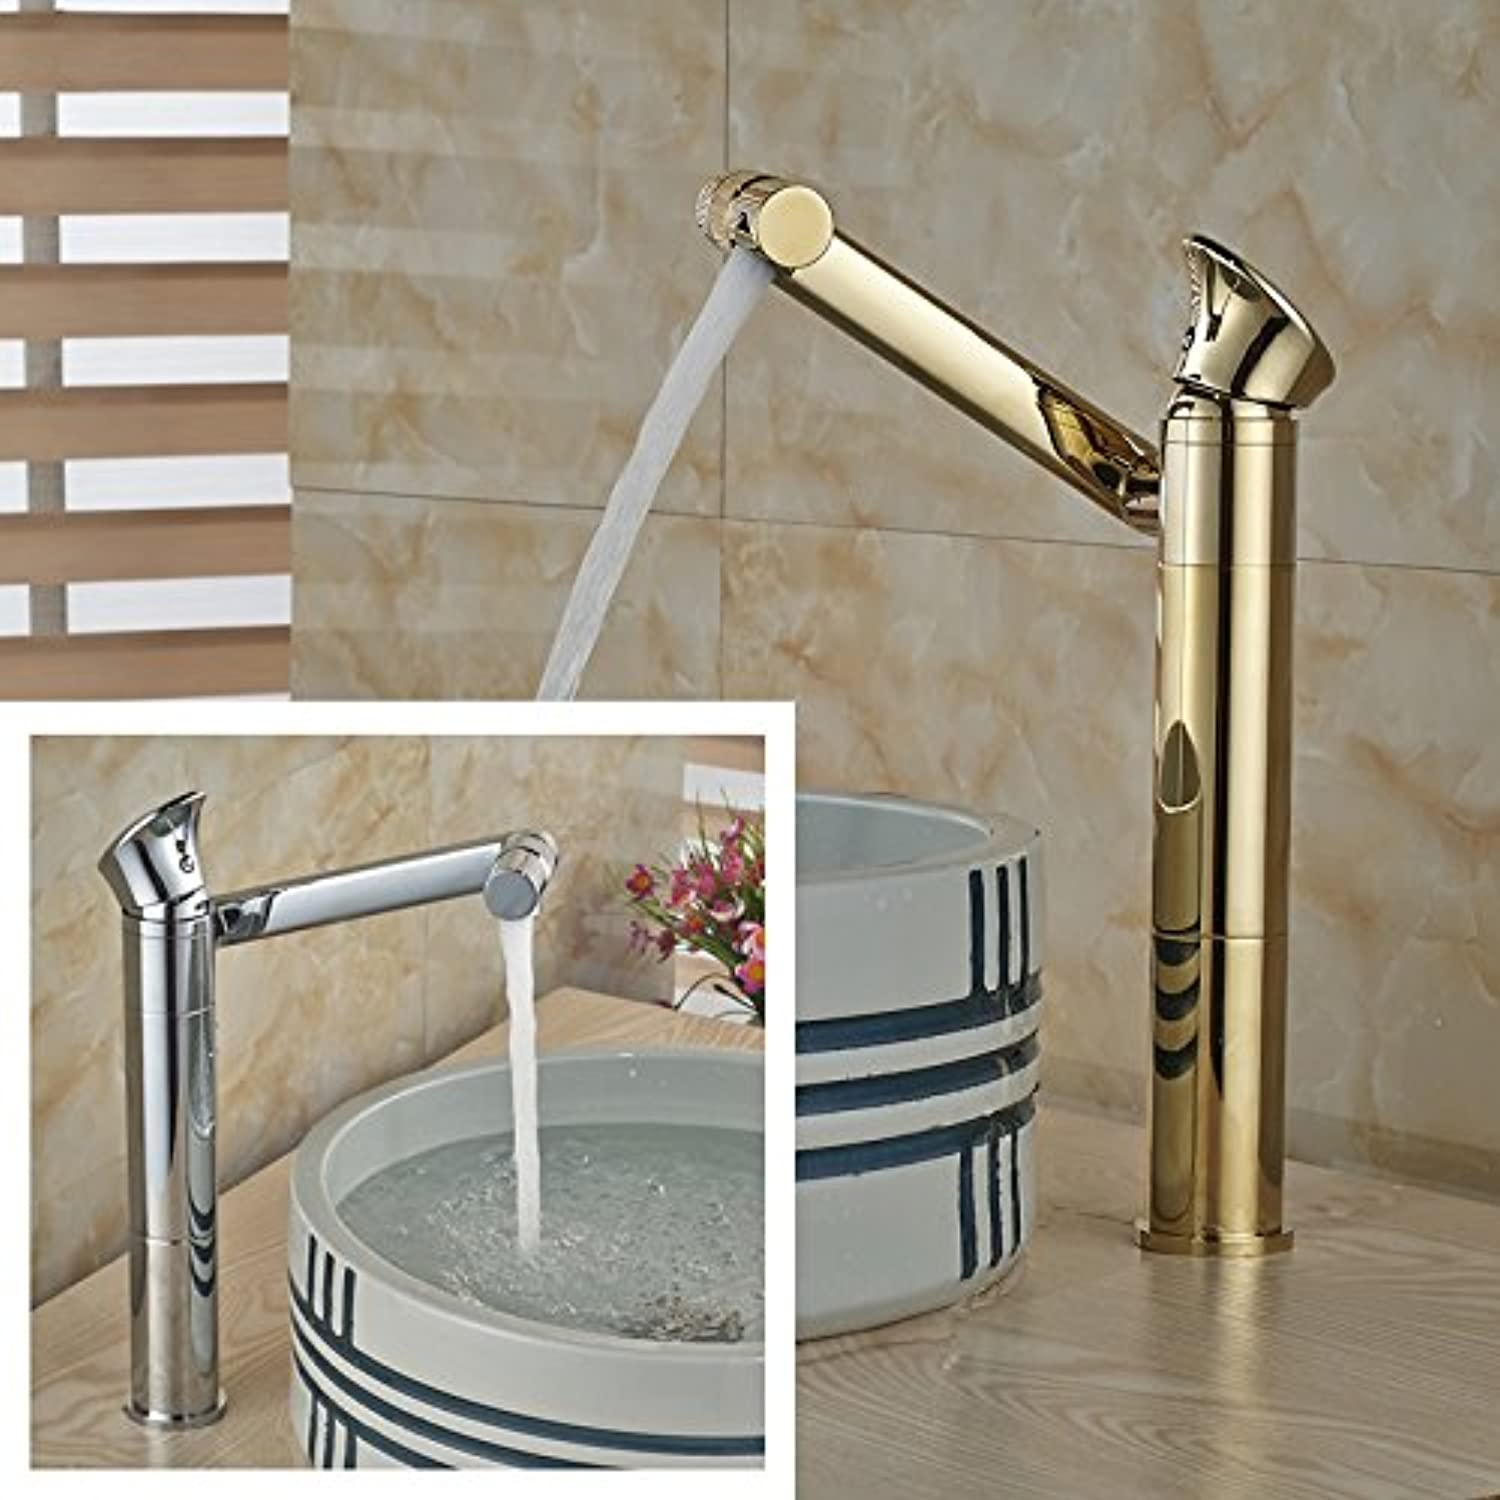 U-Enjoy New Brass 360 Top Quality redating Swivel Bathroom Sink Faucet Single Lever Chrome & gold Mixer Taps (Polished Chrome)